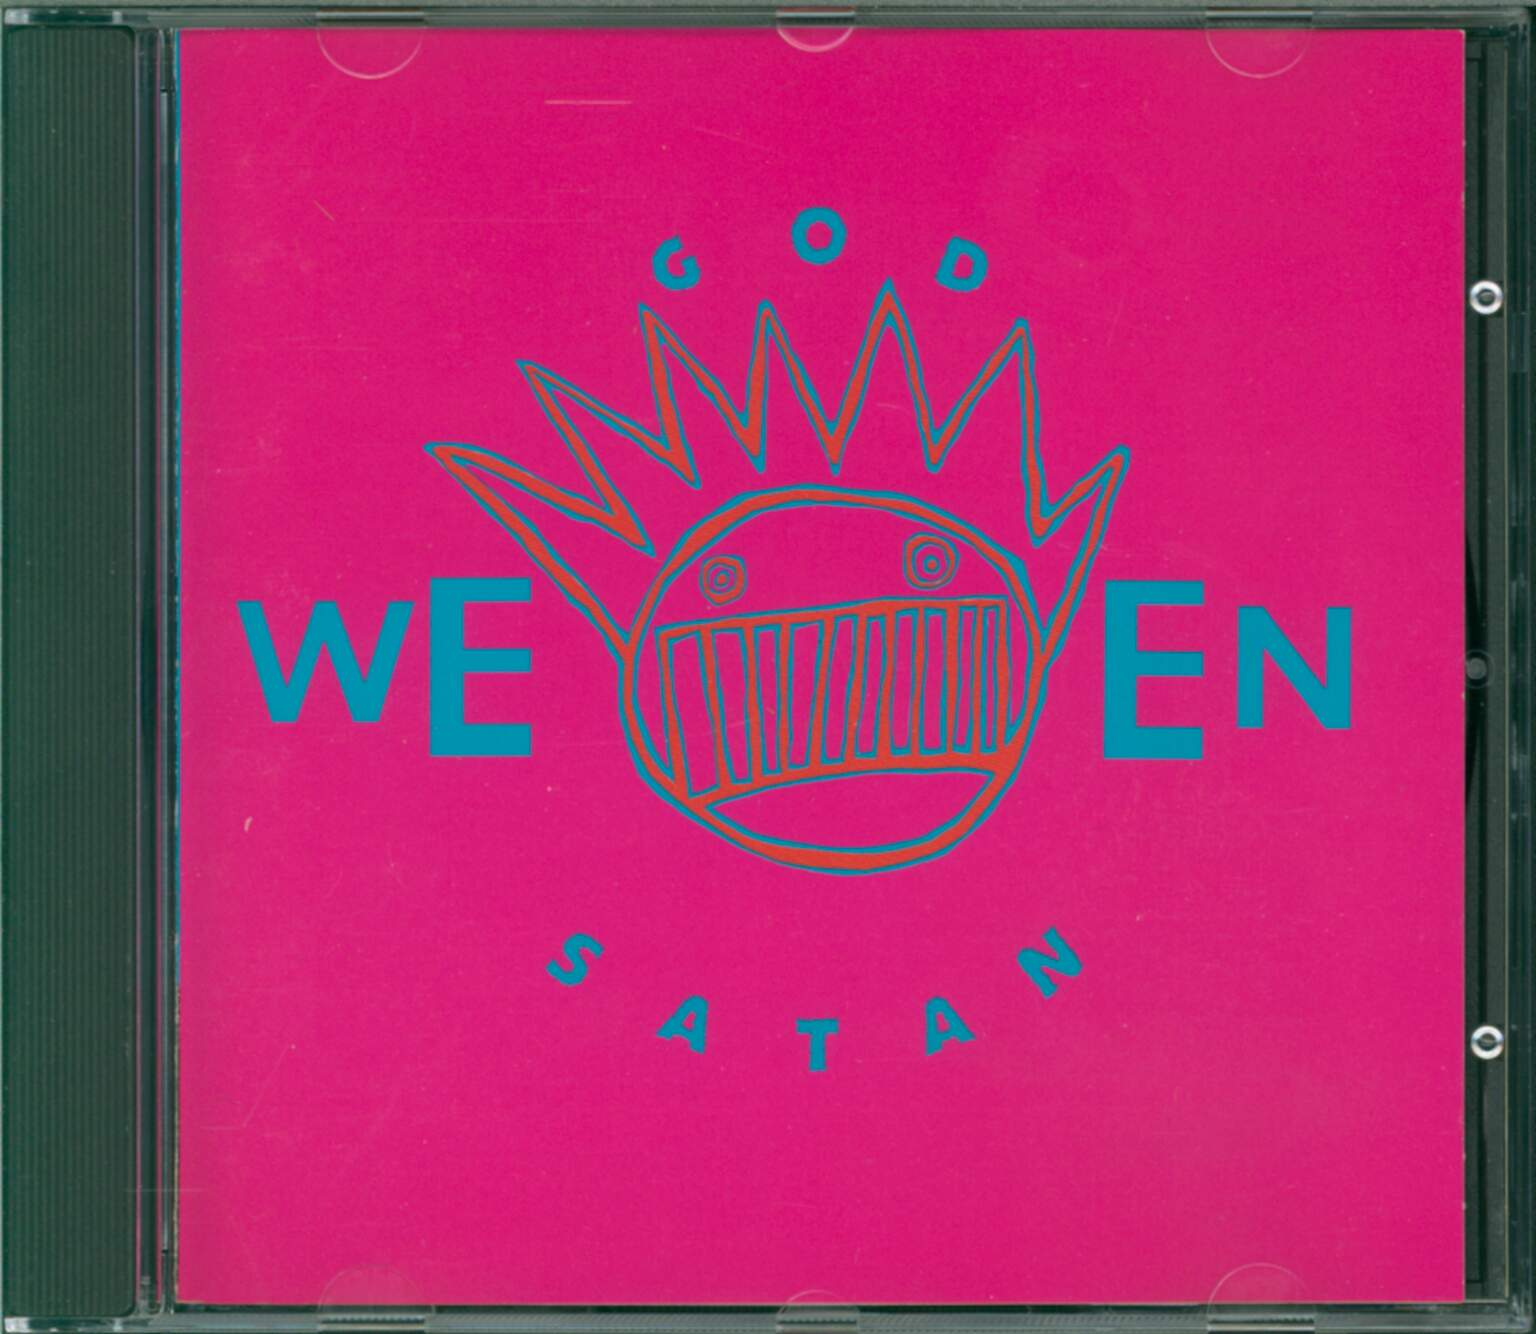 Ween: God Ween Satan - The Oneness, 1×CD